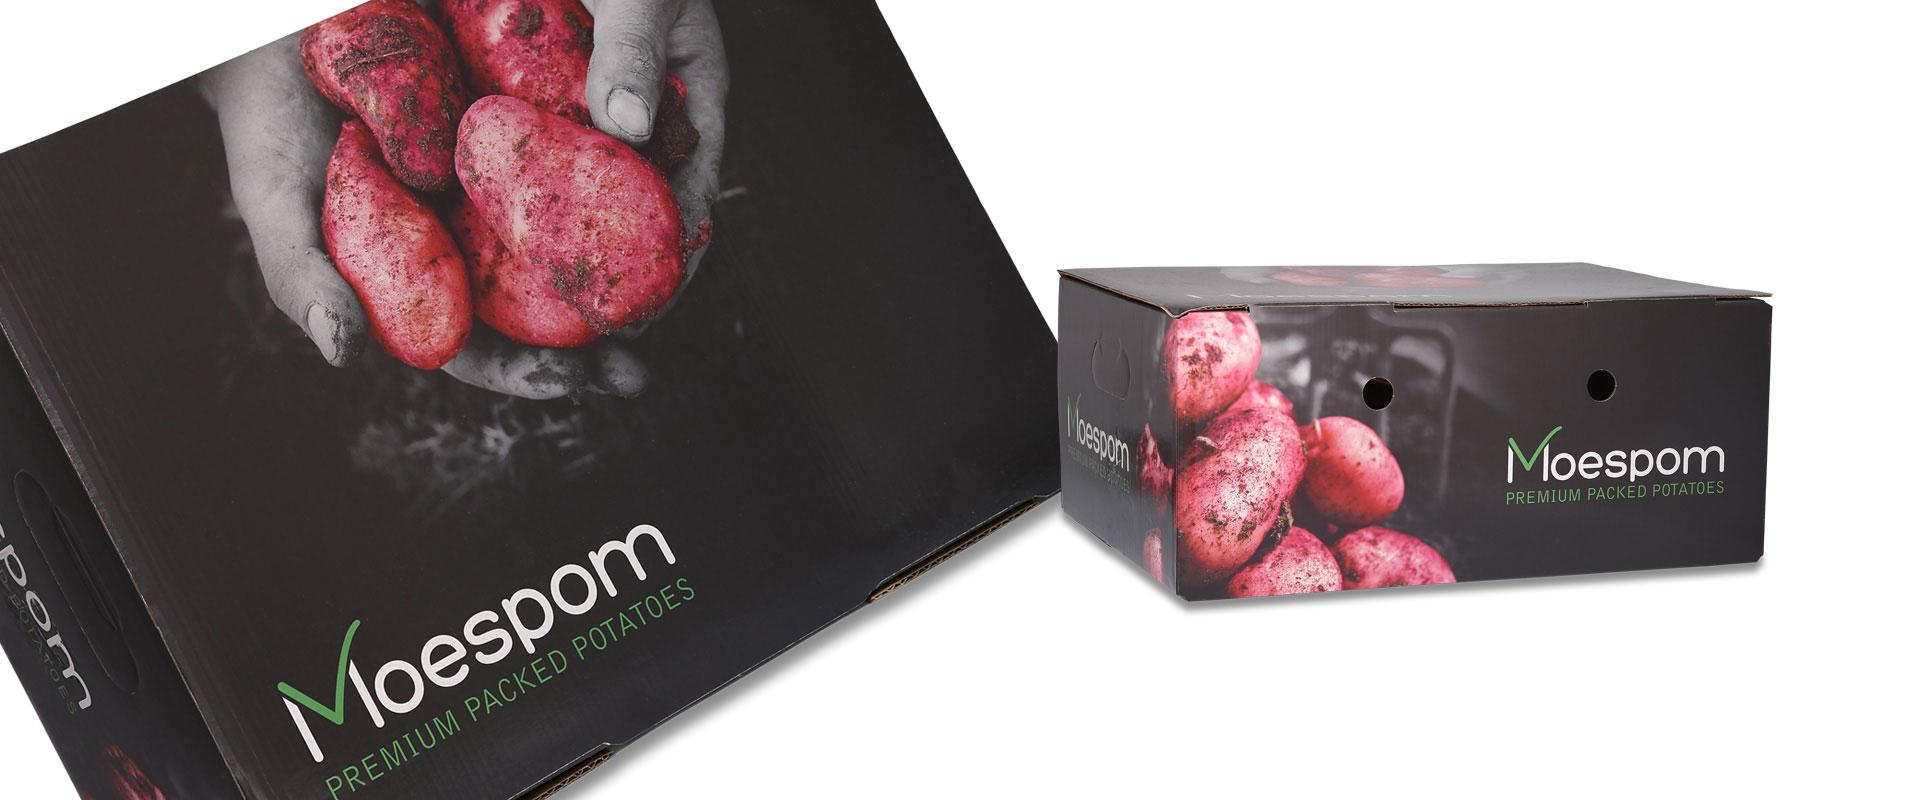 Moespom Paper boxes for potatoes